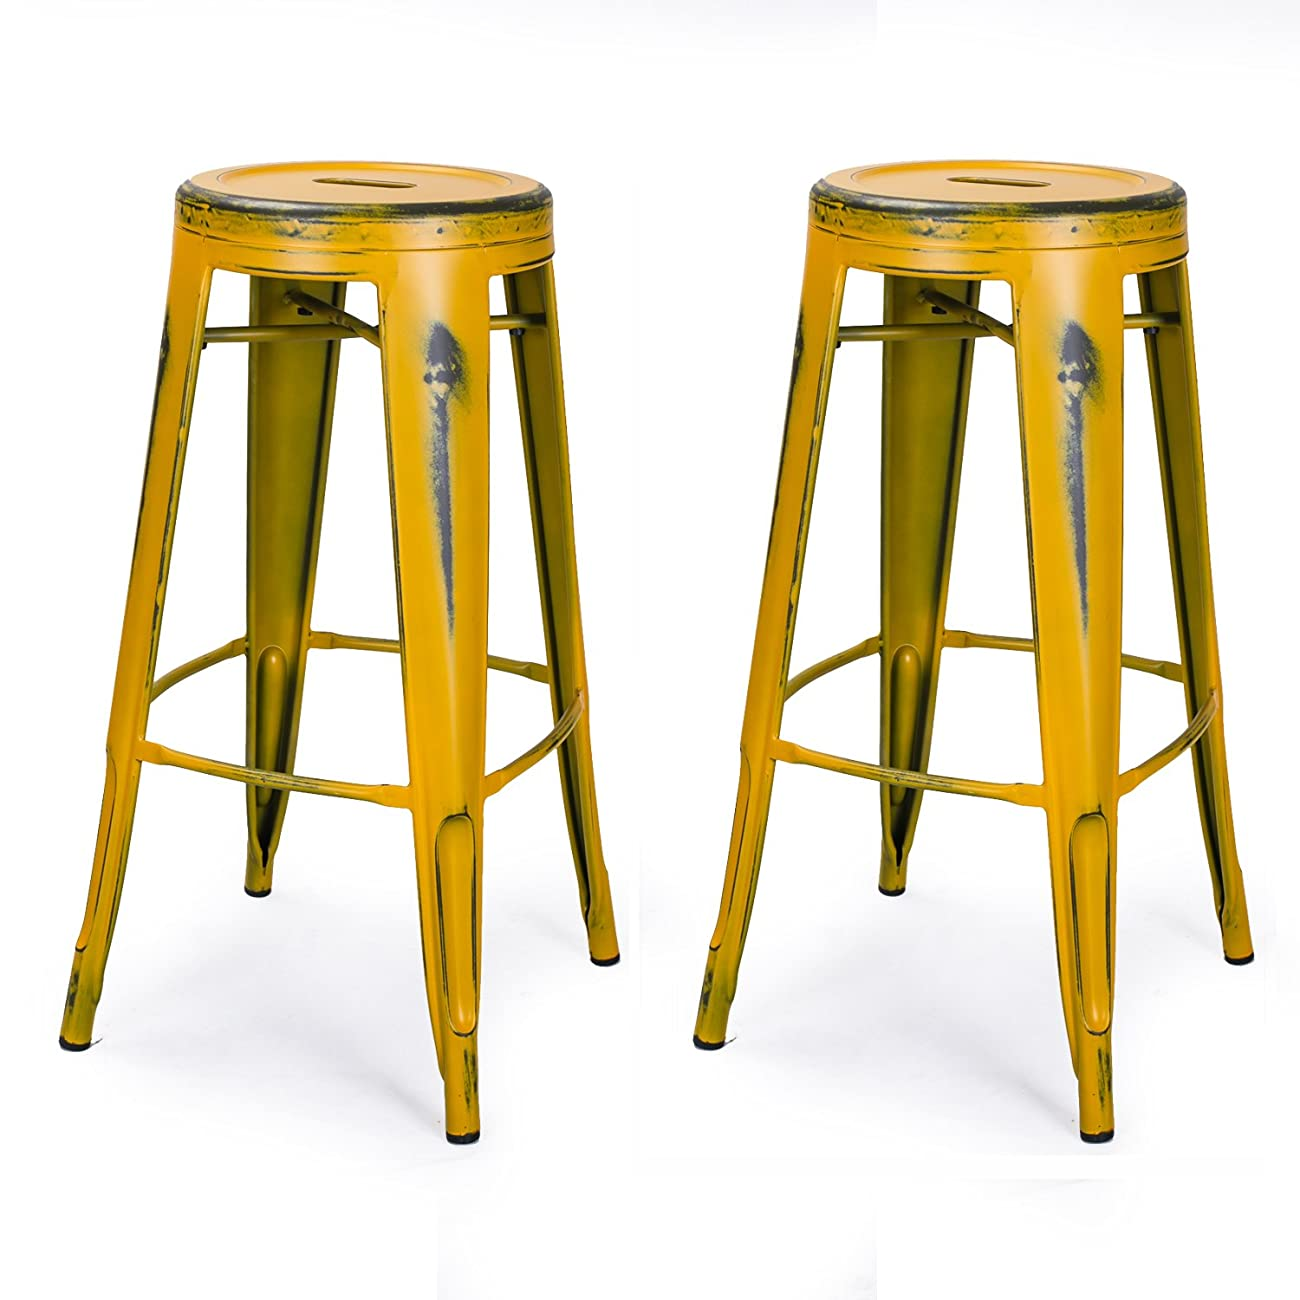 Joveco 30-inch Vintage Inspired Metal Bar Stools, Set of 2 0